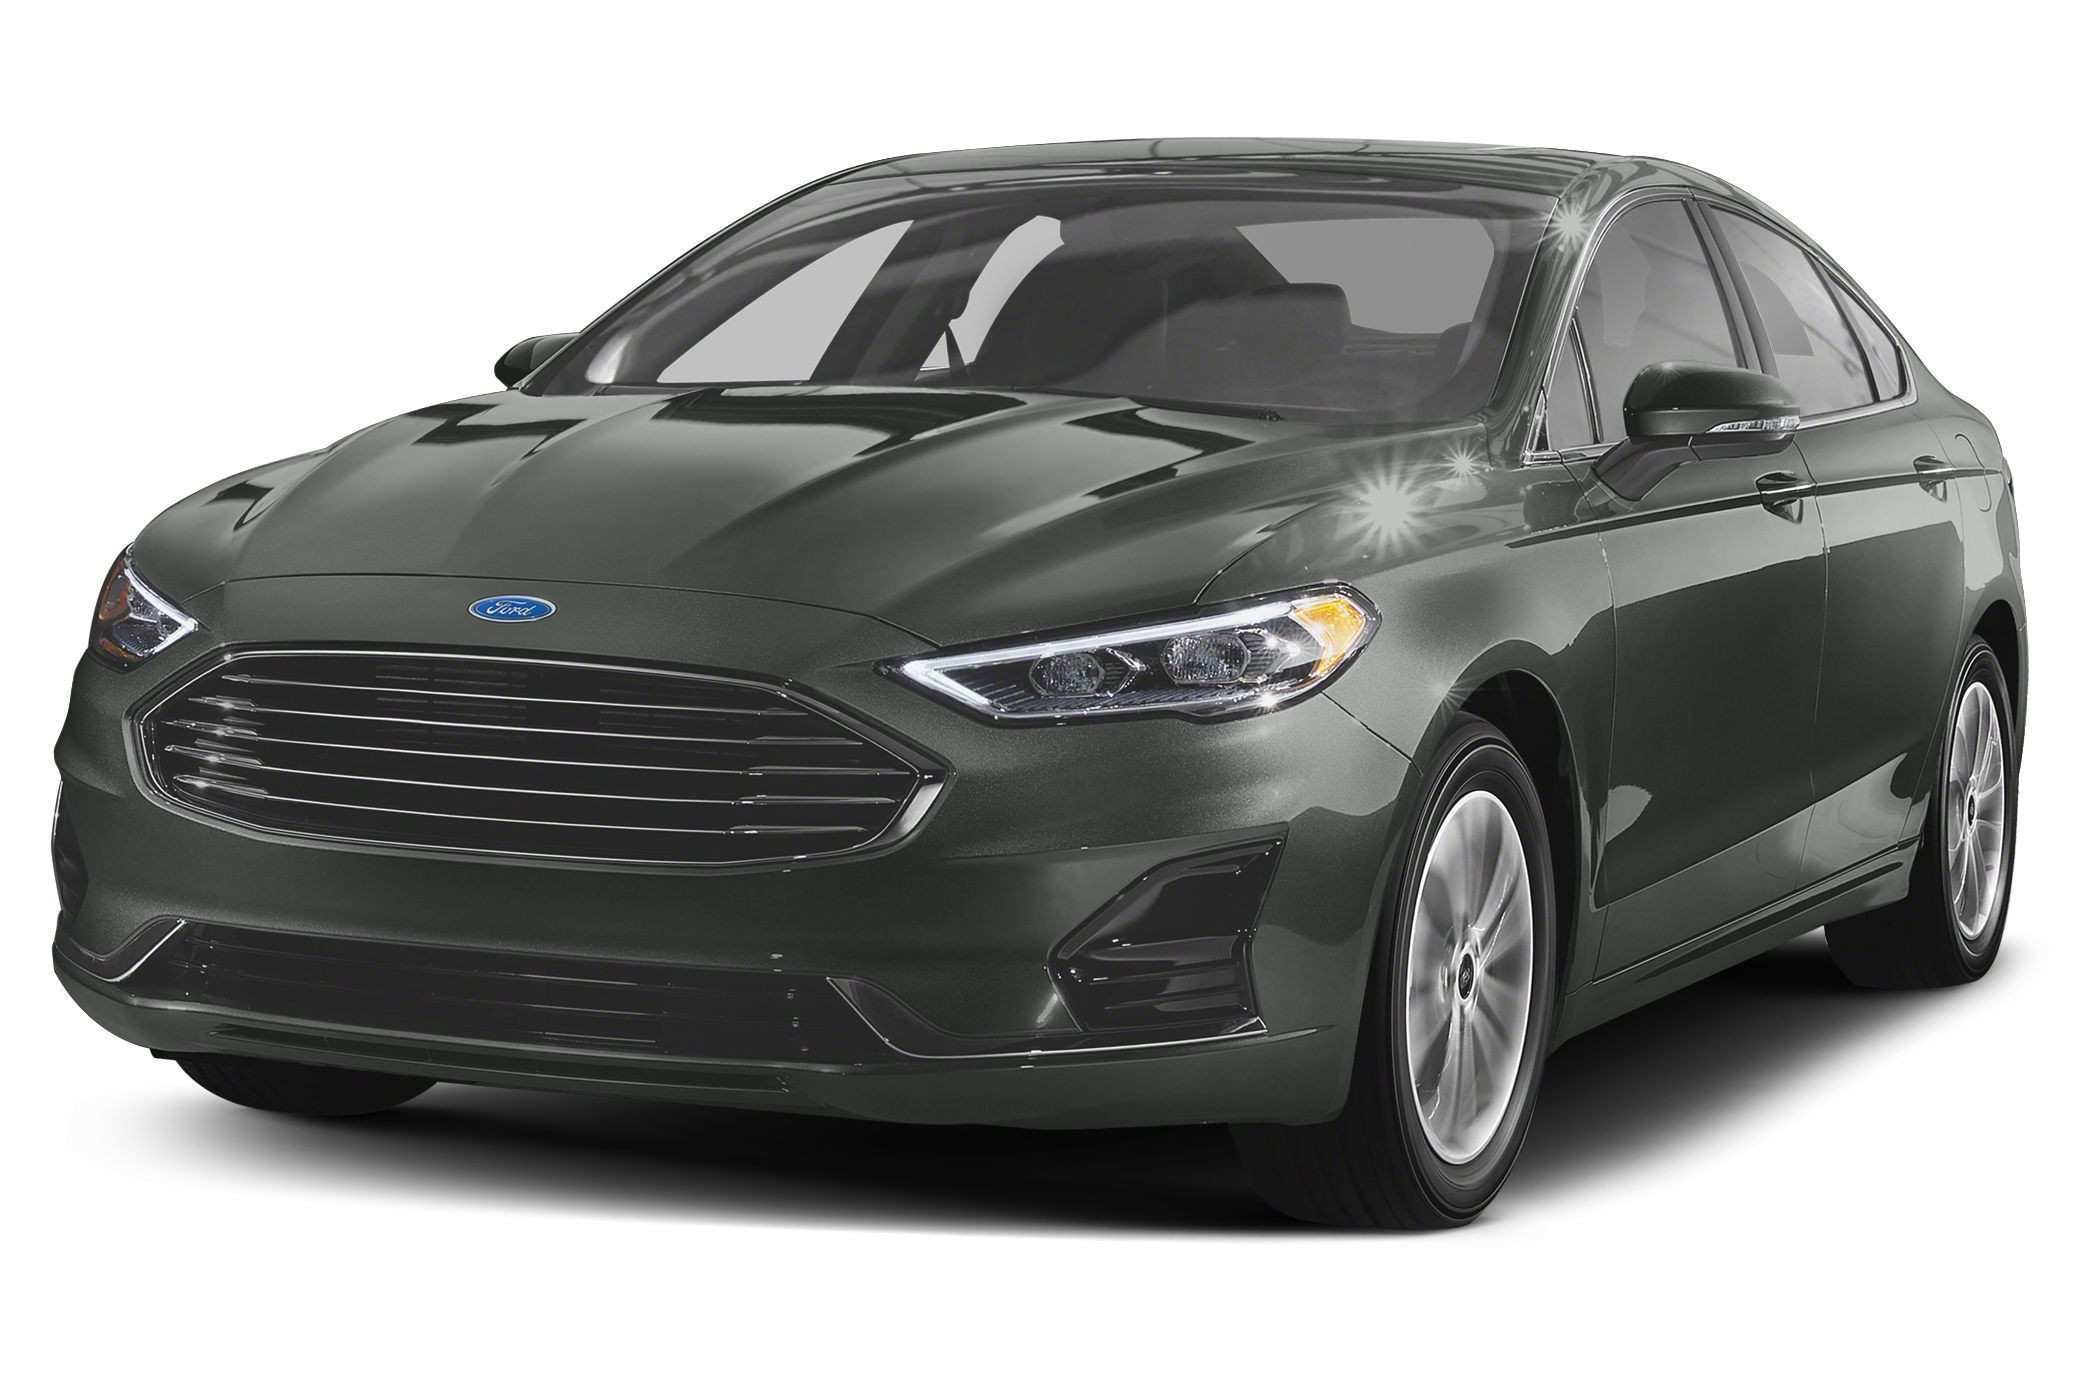 78 The 2020 Chevy Impala Ss Ltz Specs